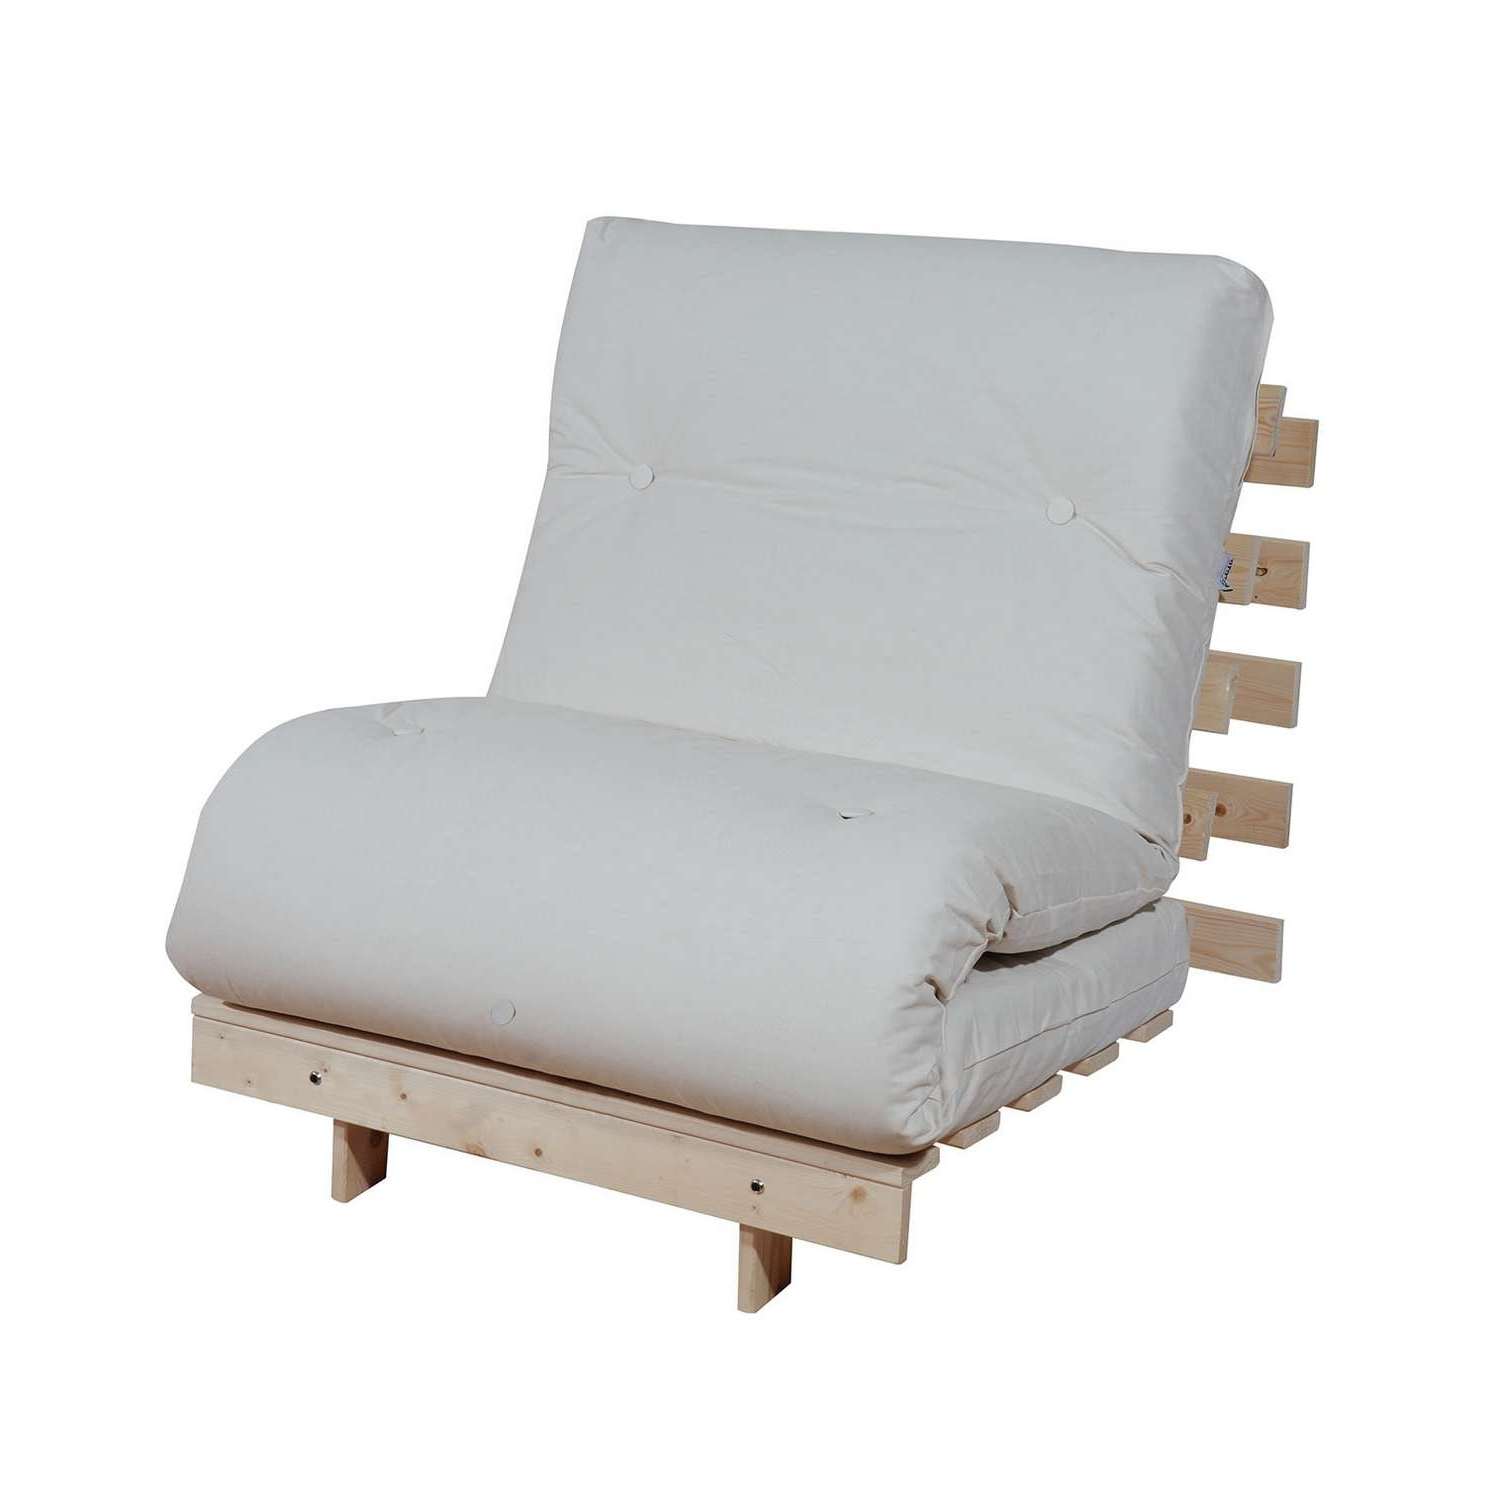 Most Recent Cheap Single Sofas For Lovable Single Sofa Sleeper Lovely Cheap Furniture Ideas With (View 4 of 20)